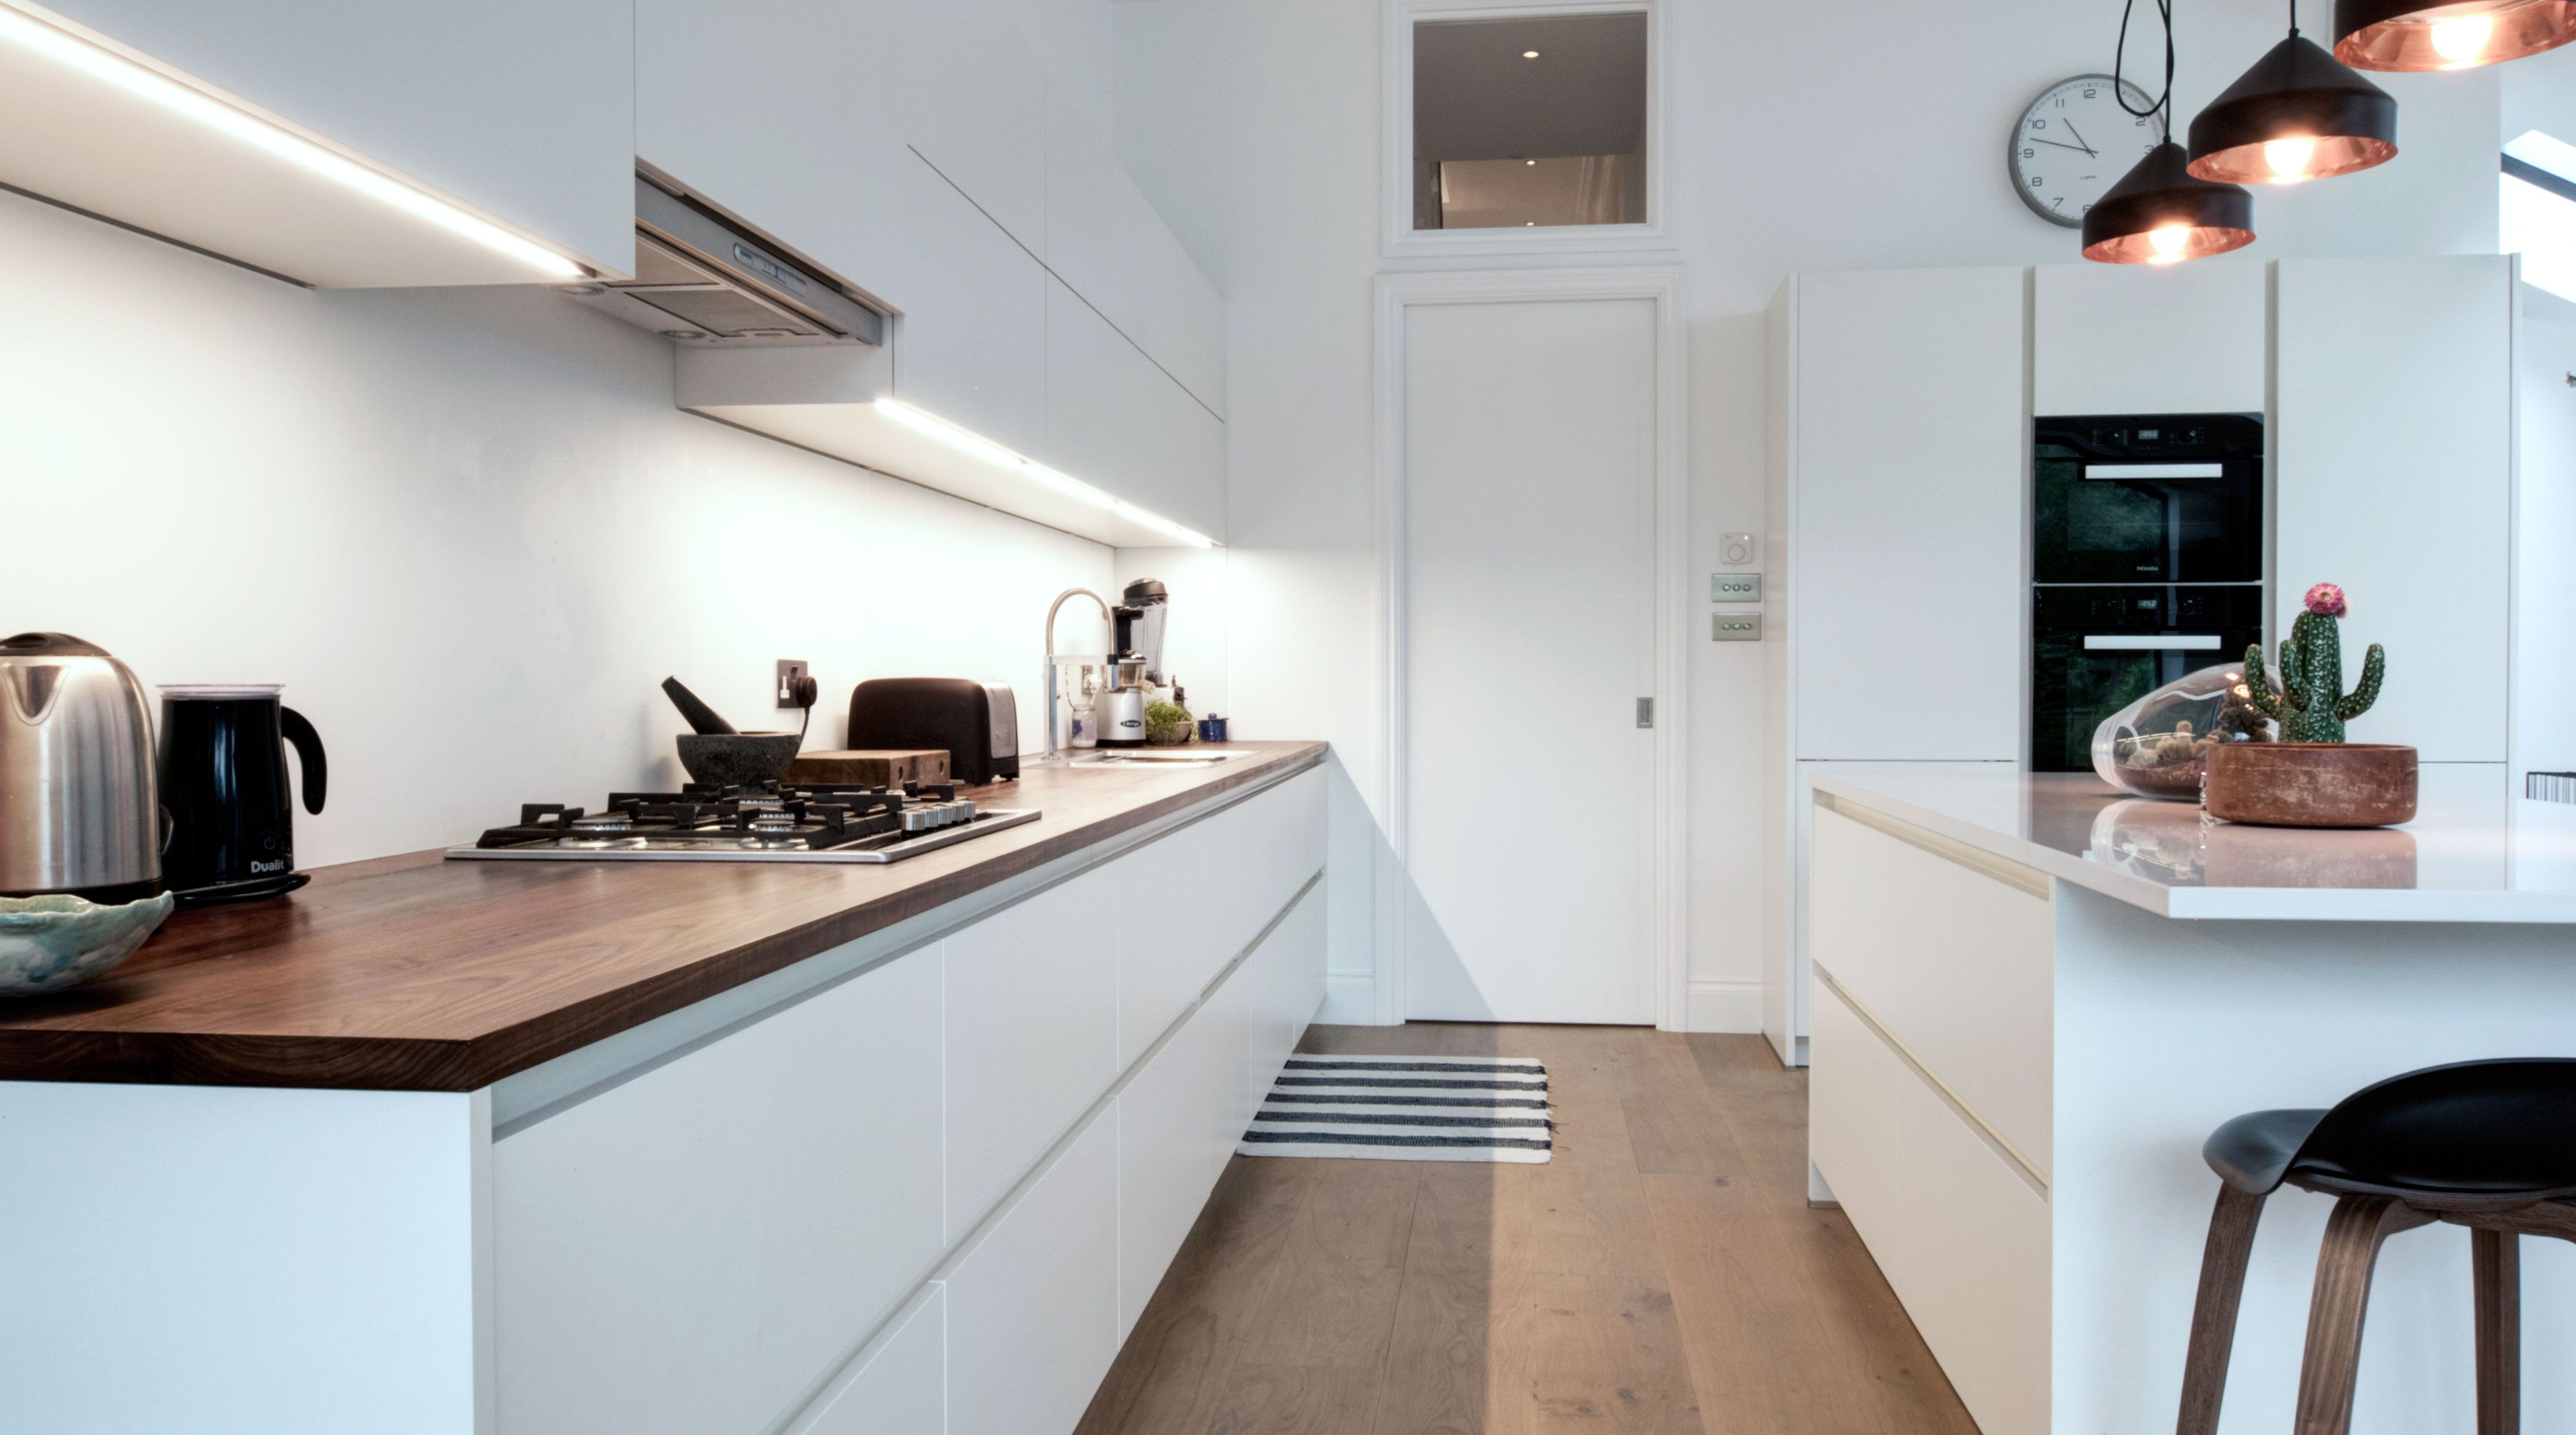 Matt white handleless German kitchen. One of our recent projects ...